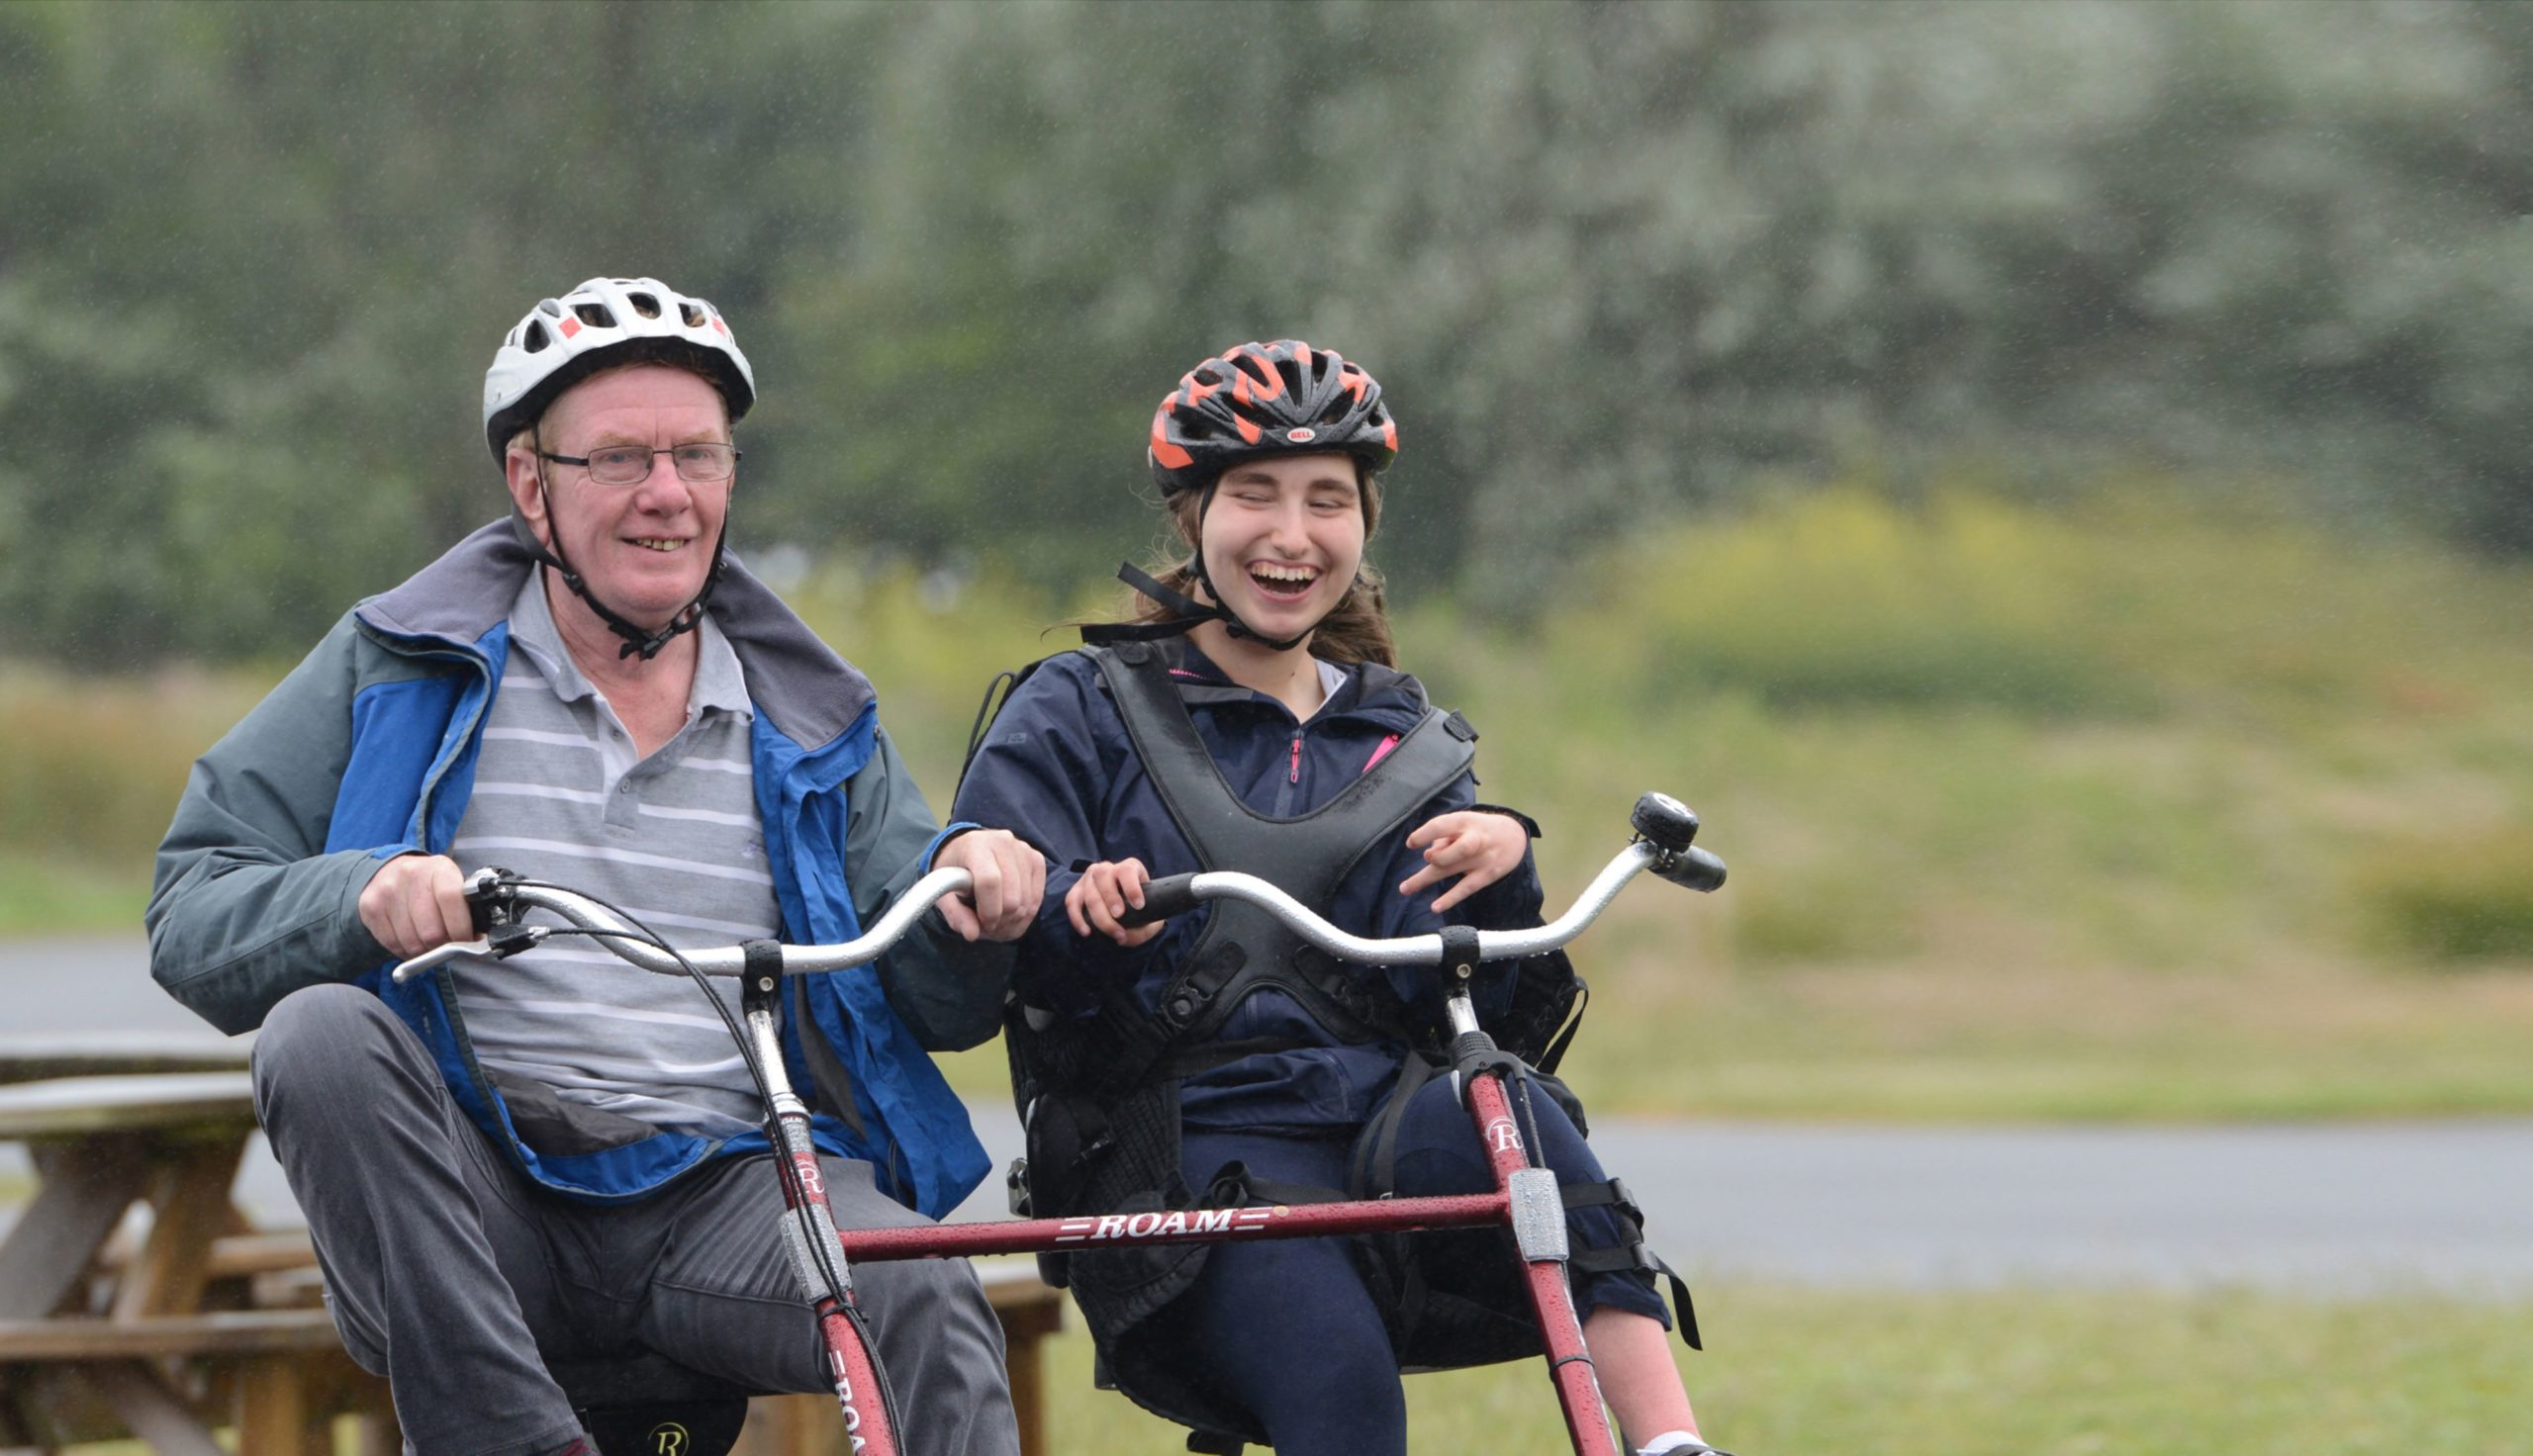 Lifeworks-robins-people-on-double-bike-cycling